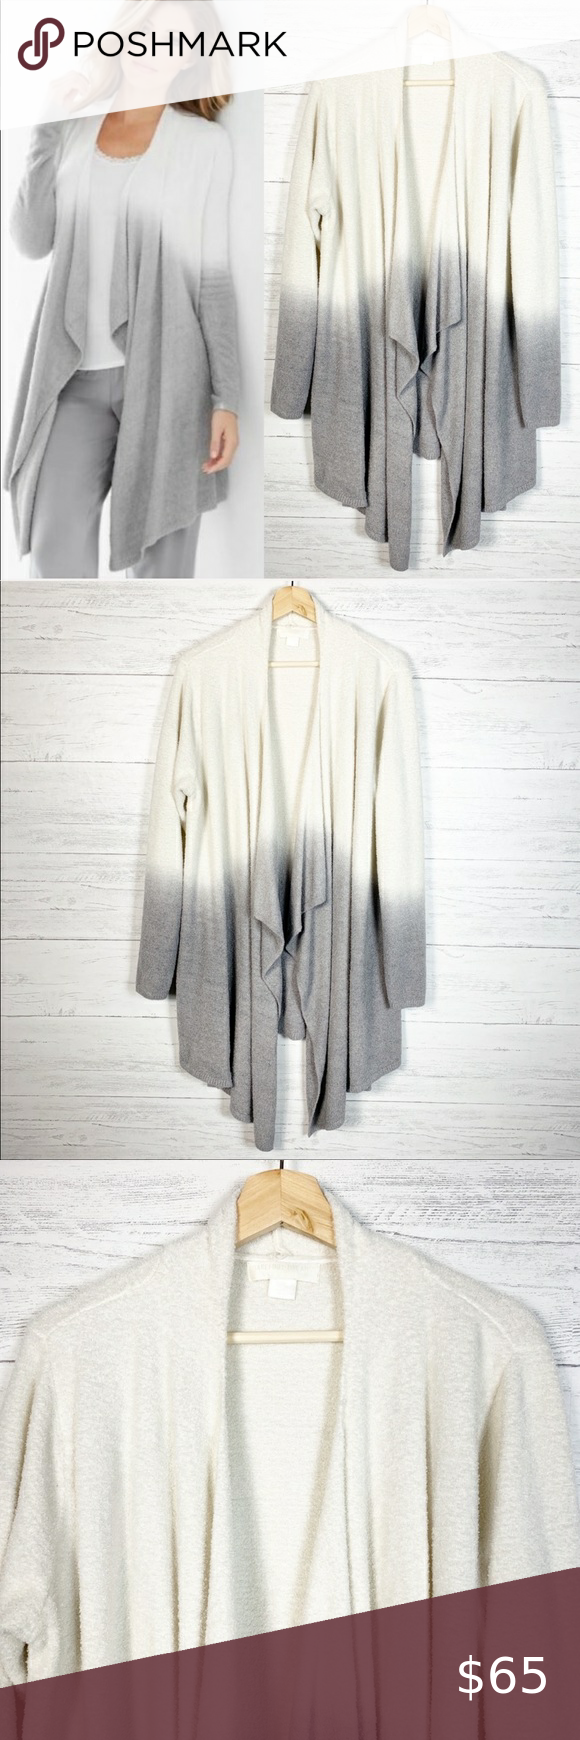 Barefoot Dreams • Cozychic Drape Front Cardigan 3X Barefoot Dreams Cream and Grey Cozychic Lite Drape Front Ombré Calypso Cardigan Sweater  Size 3X EXCELLENT Pre-Owned Condition  Worn Once and Washed Once Super Soft and Luxurious Stretch Open Front  Approximate Measurements: (Laying Flat) Bust is 53 in. (26.5 in. Flat) Waist is 53 in. Sleeve Length is 26.5 in. Shoulder to Hem is 34 in.  Thank you for shopping my closet! Barefoot Dreams Tops